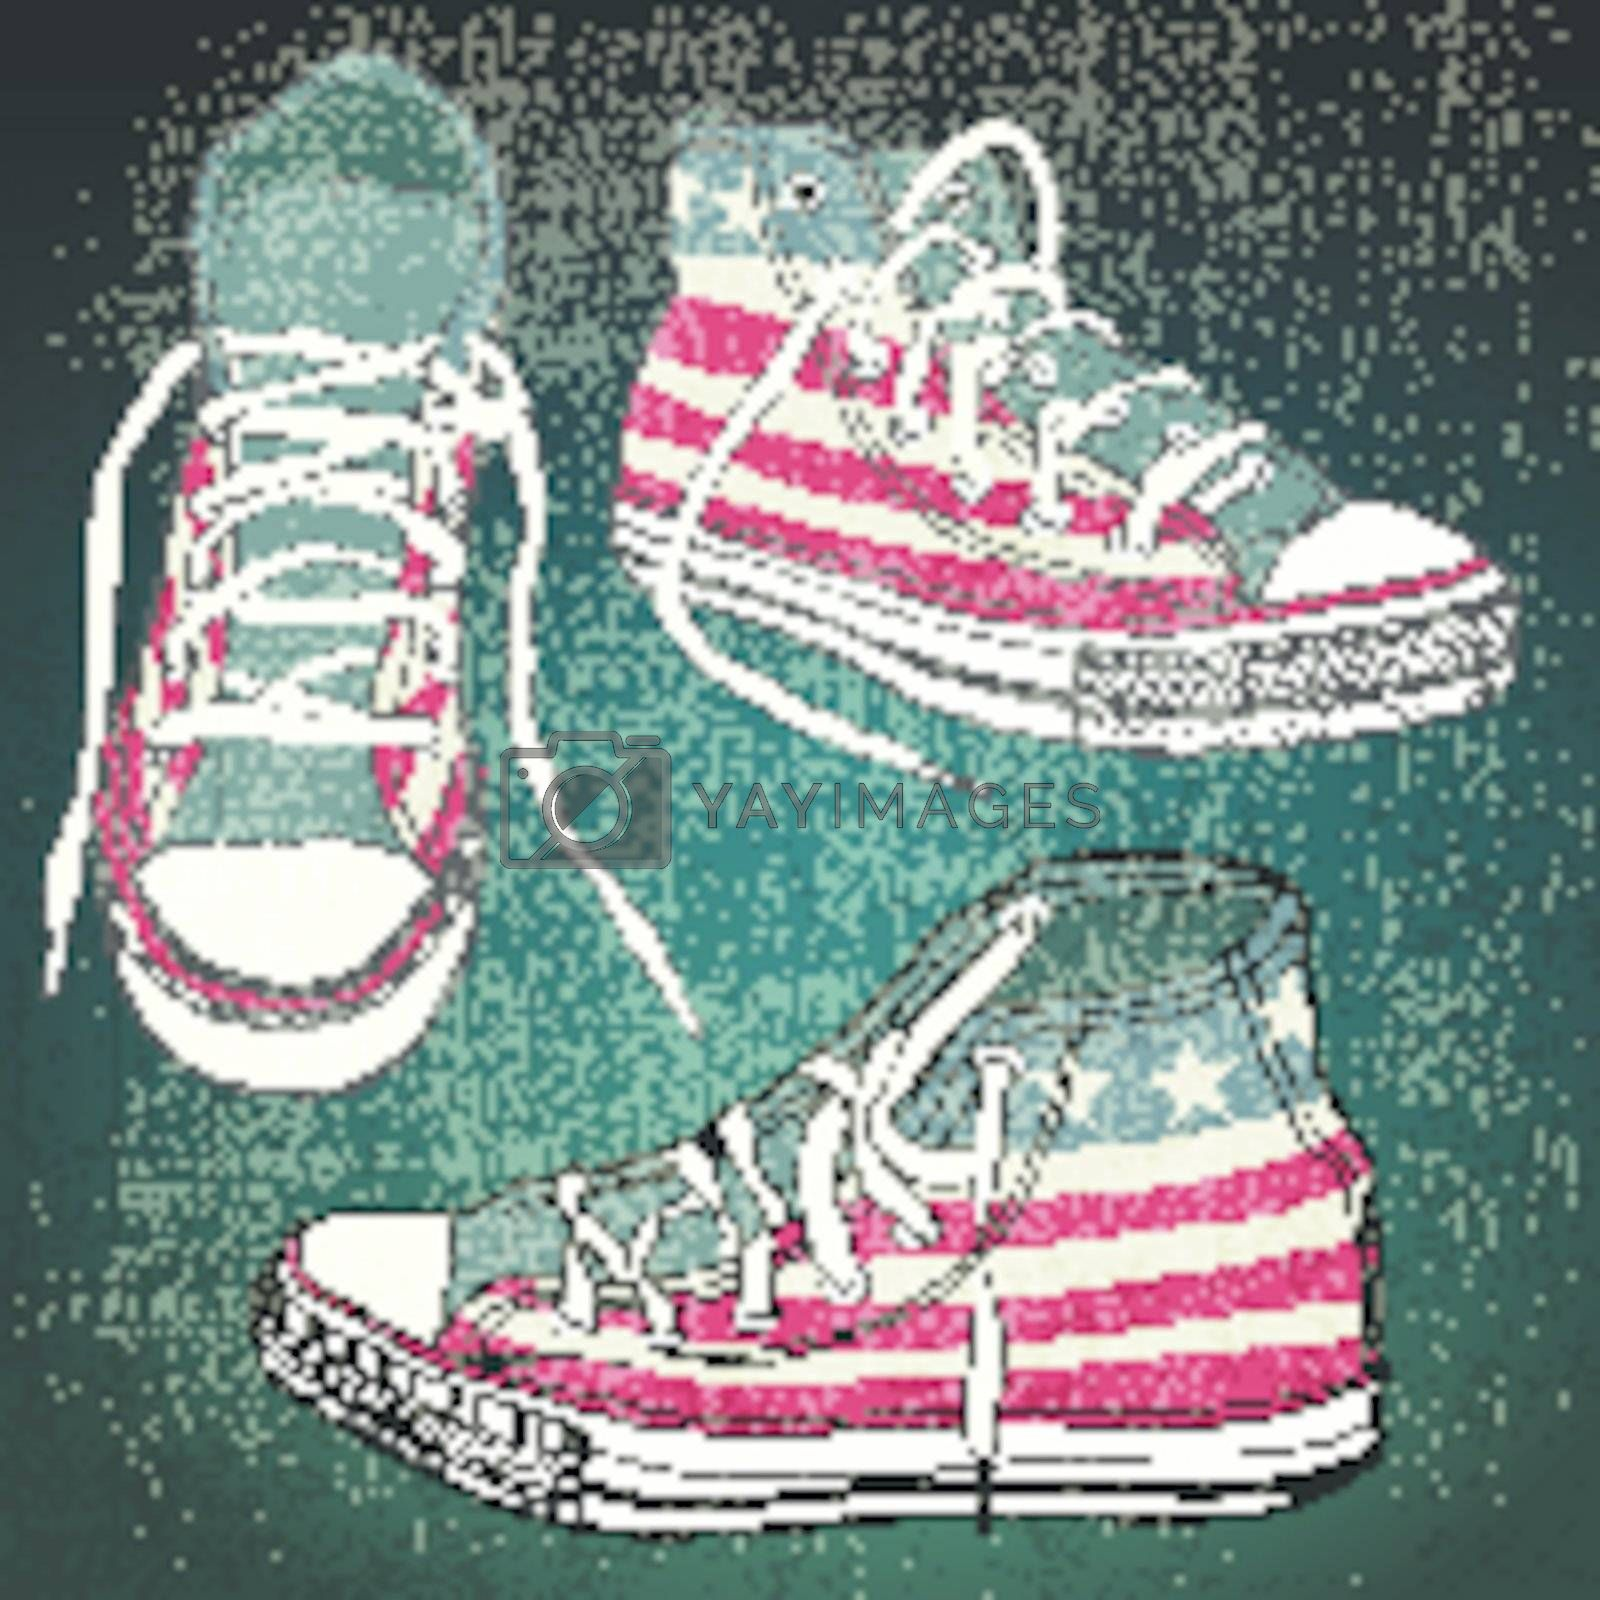 shoes with american stars and stripes with grunge effect